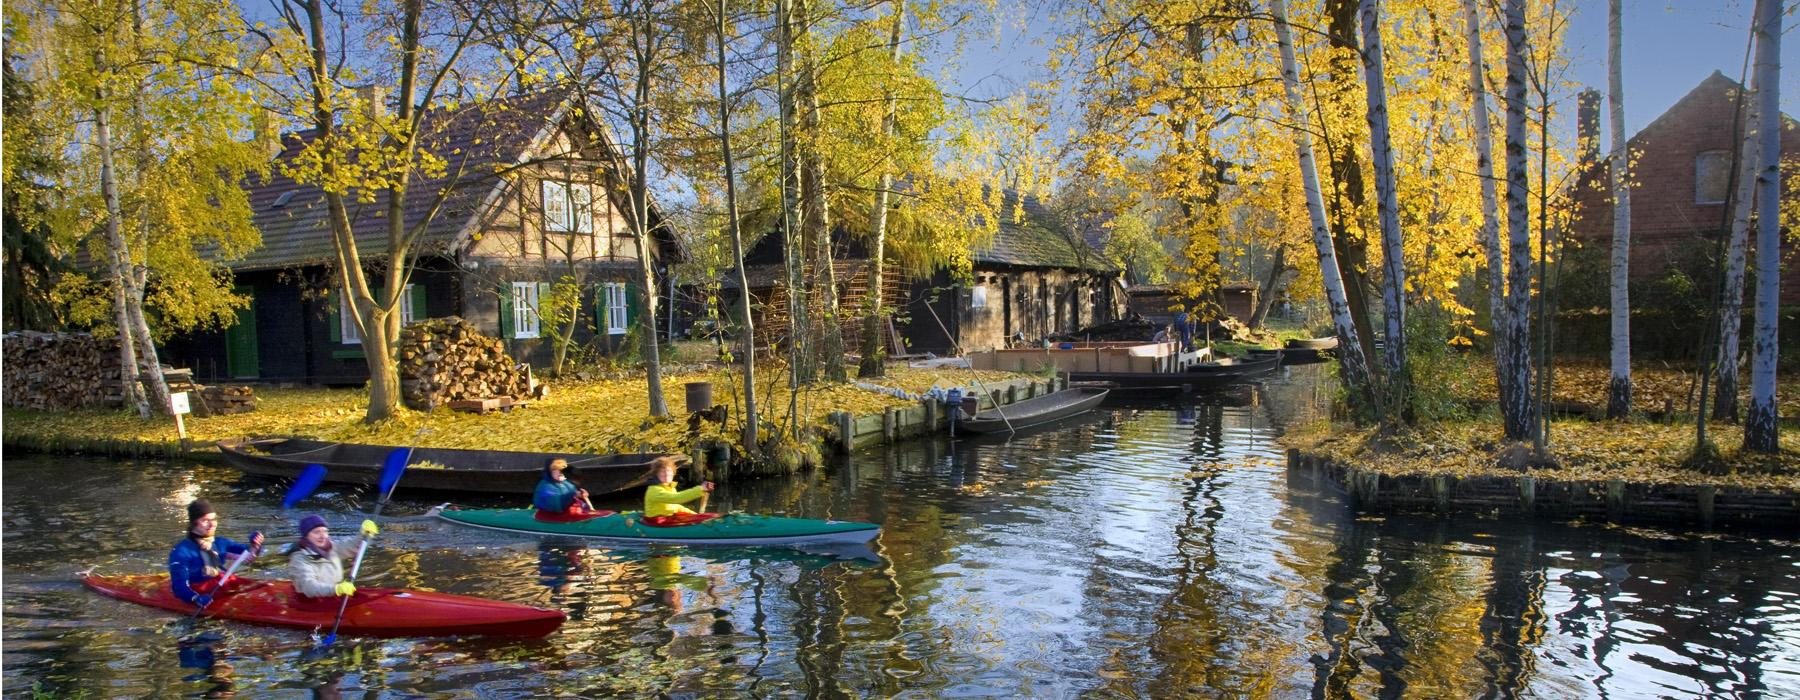 Canoeing tour in the Spreewald